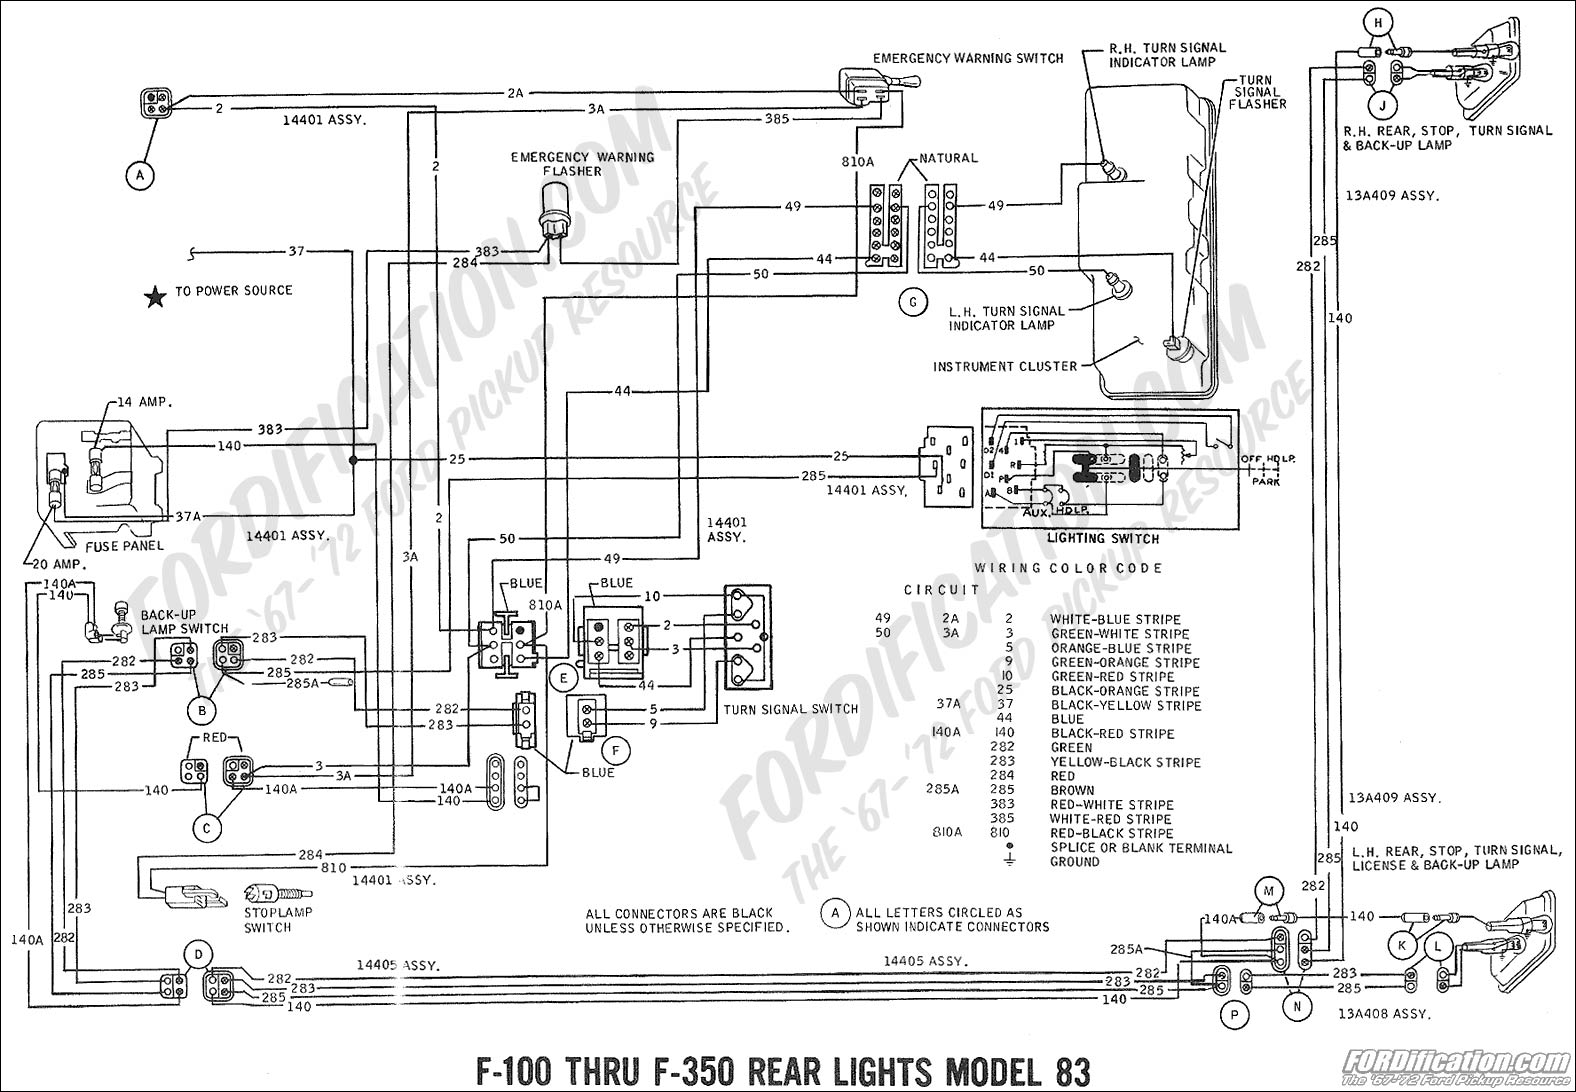 ford truck technical drawings and schematics section h 1998 Mustang  Headlight Wiring Diagram 91 Mustang Headlight Wiring Diagram